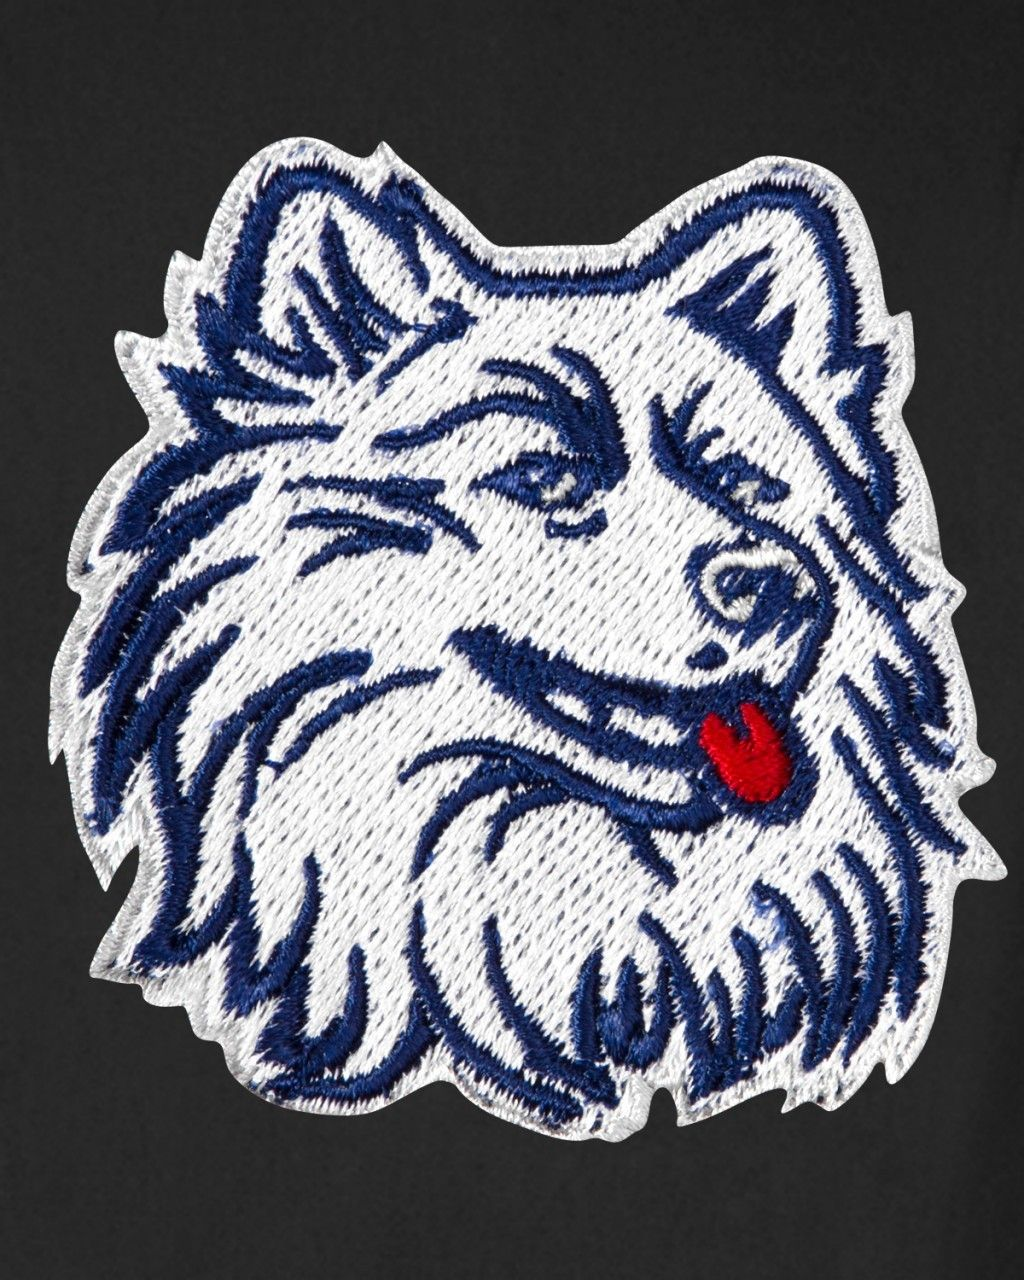 Uconn Huskies Team Fashion Apparel Meesh Mia With Images